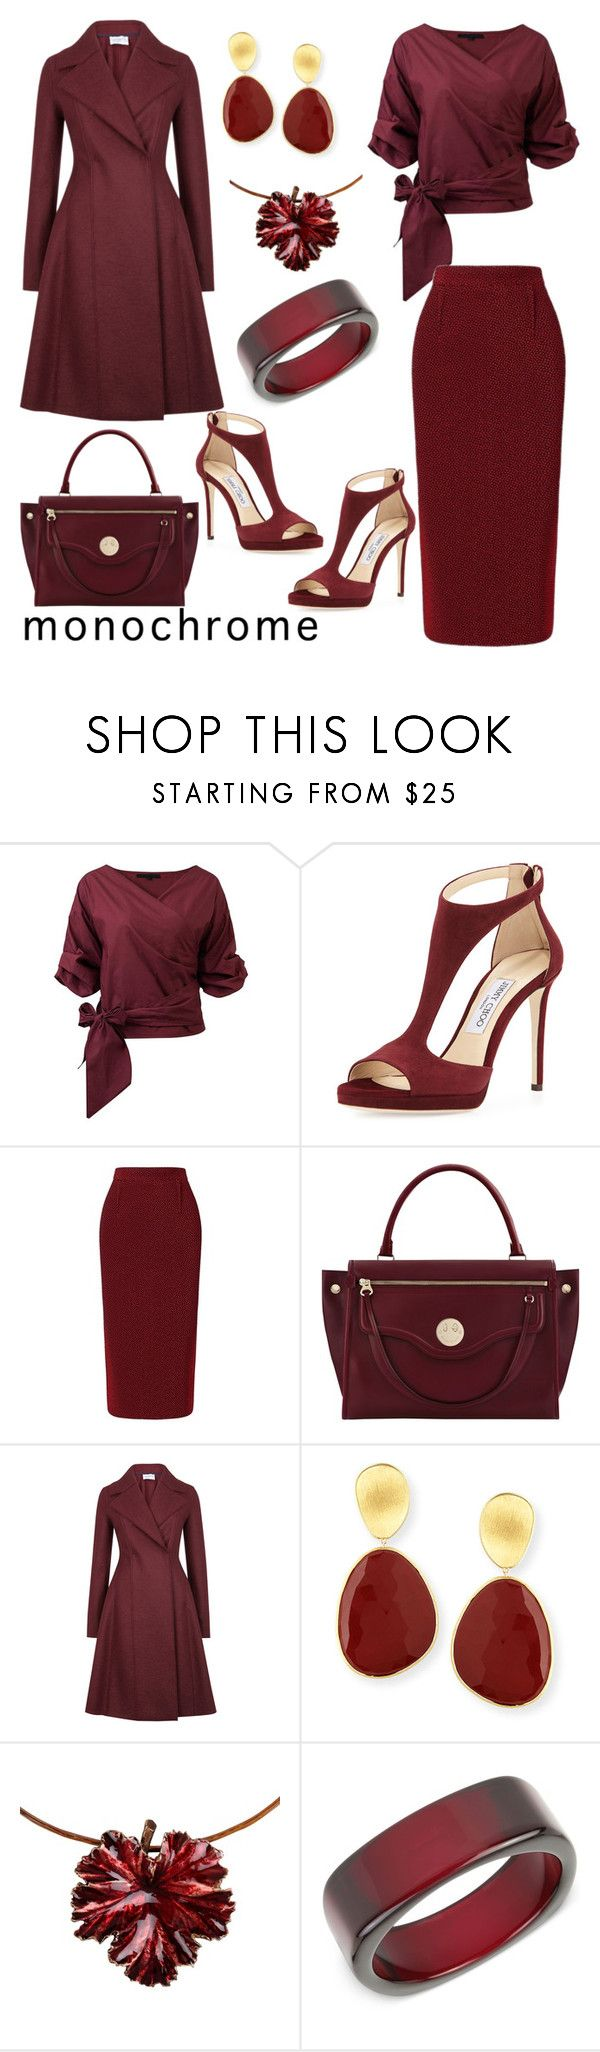 """""""Claret"""" by wallaceschade ❤ liked on Polyvore featuring Jimmy Choo, Roland Mouret, Hill & Friends, Harris Wharf London, Marco Bicego, Madina Visconti di Modrone and INC International Concepts"""